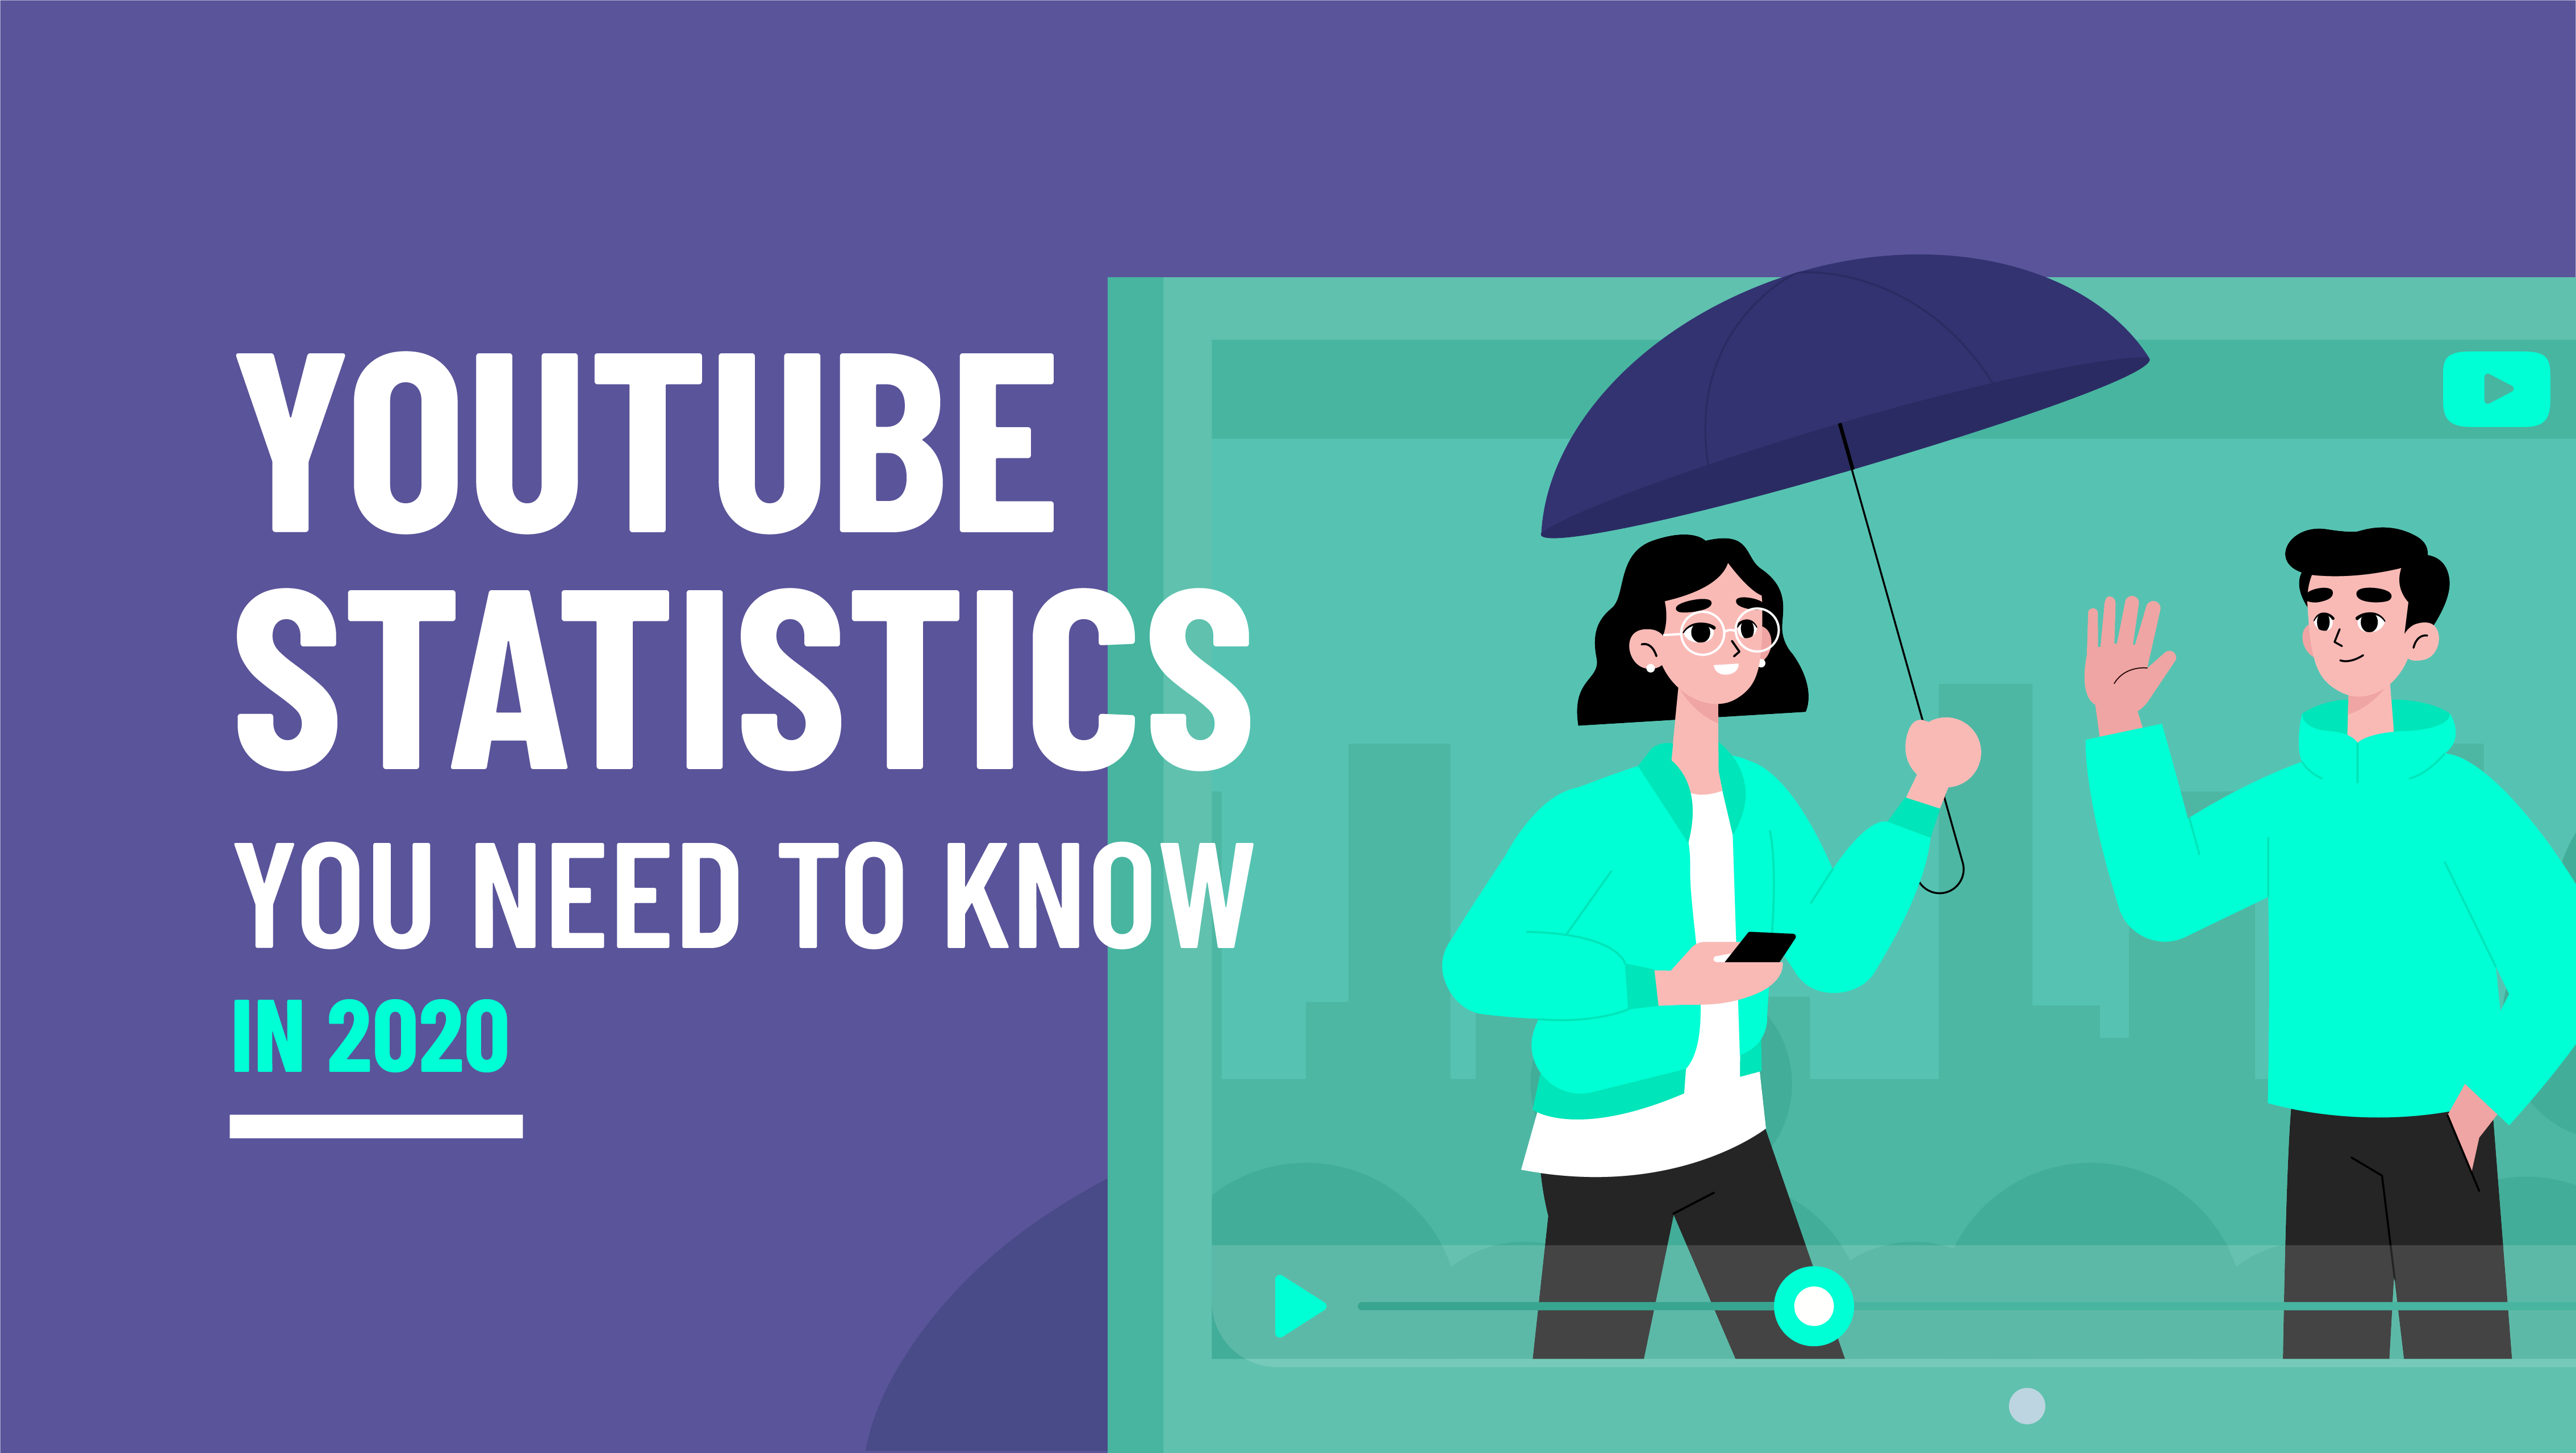 56+ Need To Know YouTube Statistics in 2021 [INFOGRAPHIC]